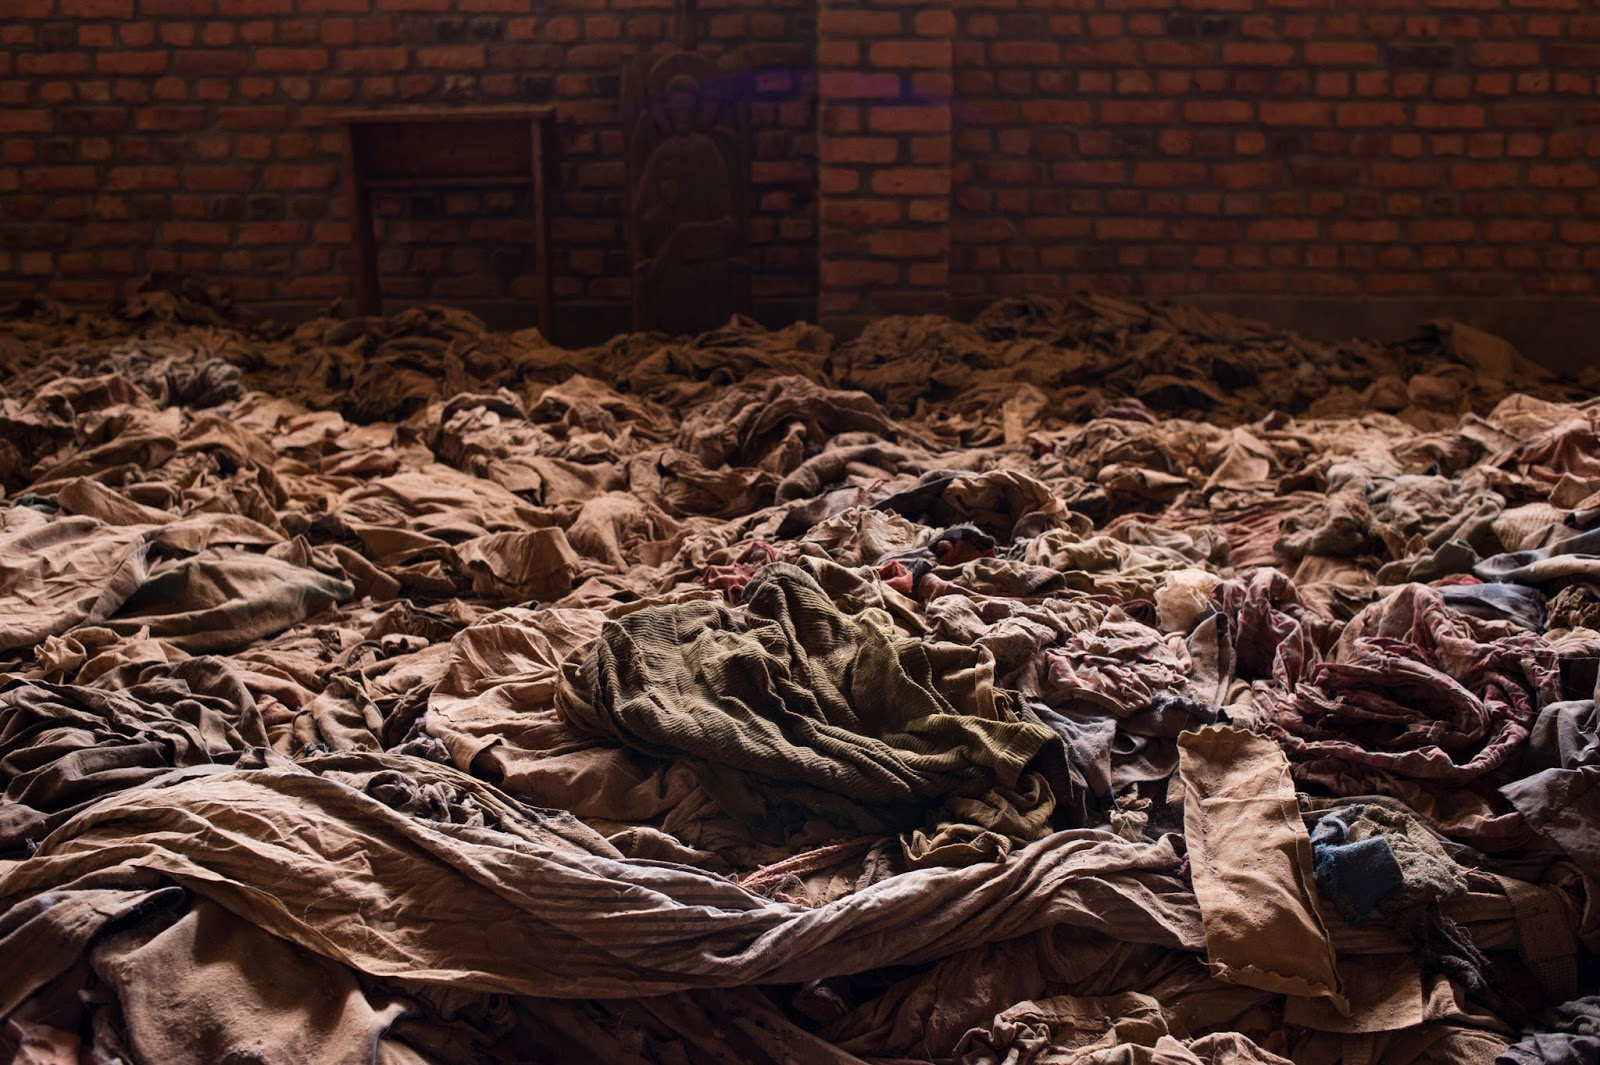 an analysis of the rwanda genocide in 1994 Free essay: the rwandan genocide of 1994 lasted only for a brief period and lasted for approximately a hundred days during that time, an estimated amount of.